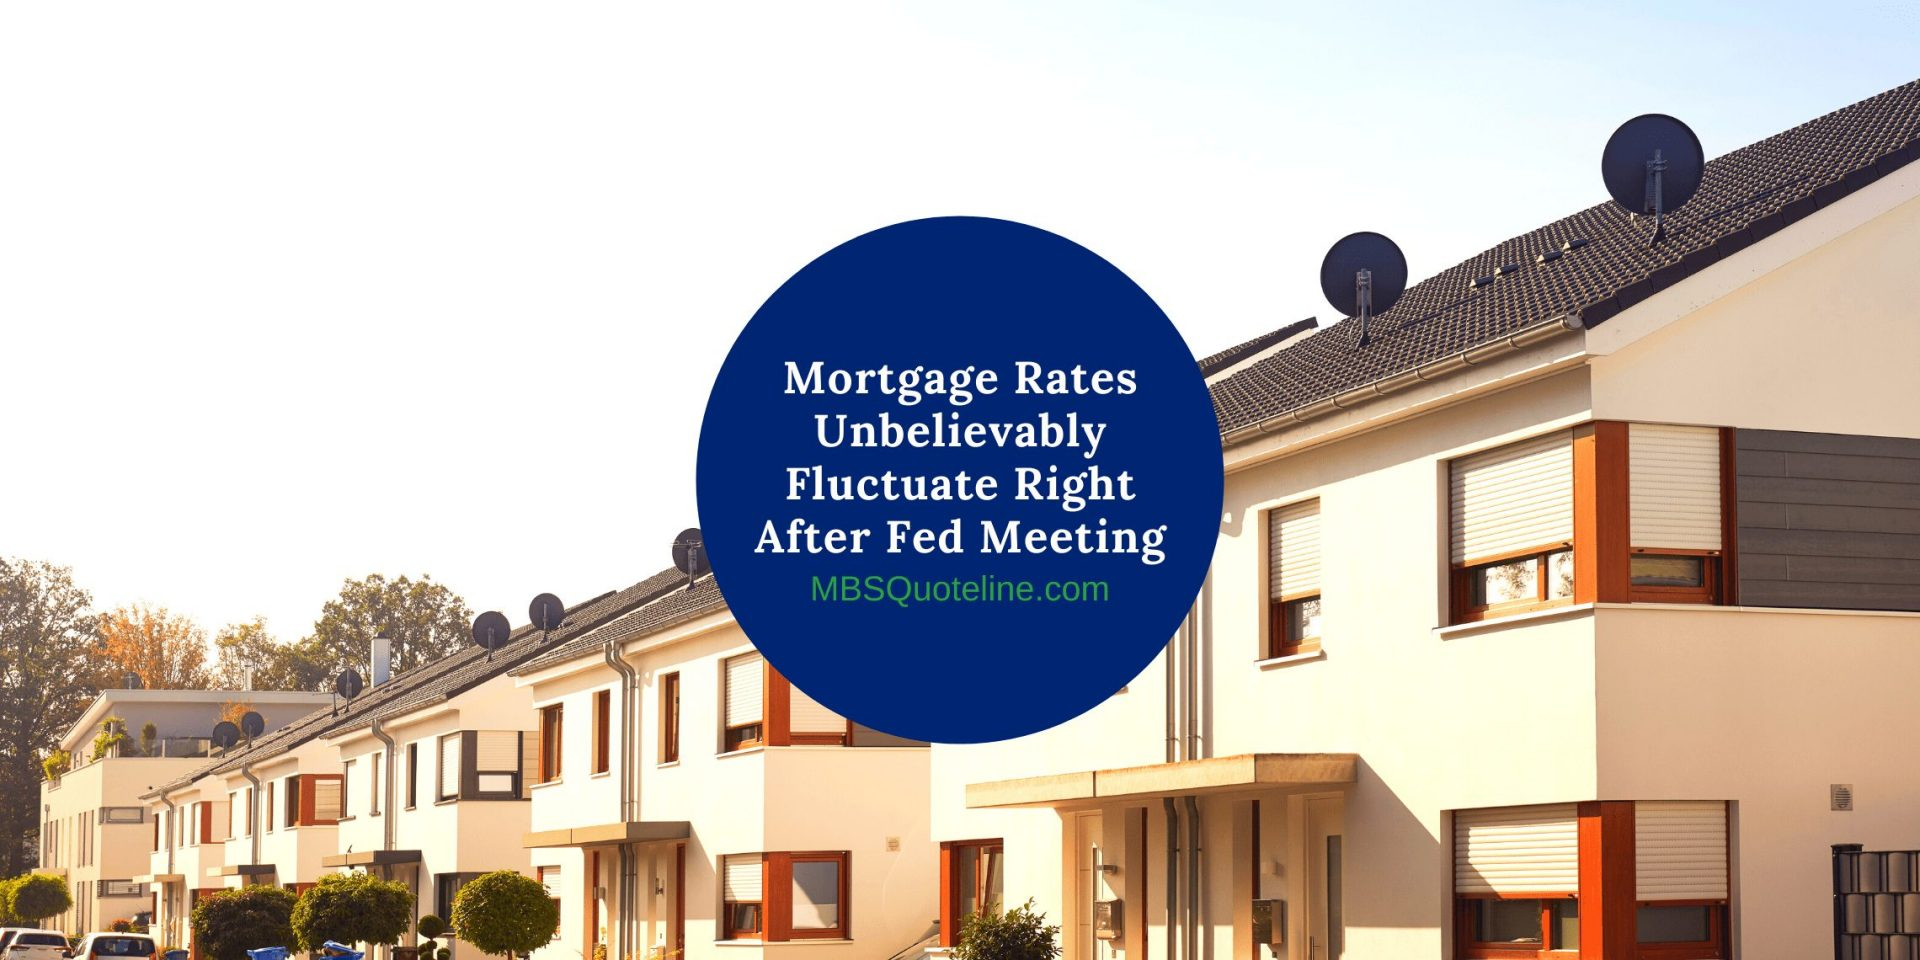 Mortgage Rates Unbelievably Fluctuate Right After Fed Meeting MortgageTime MBSQuoteline Featured